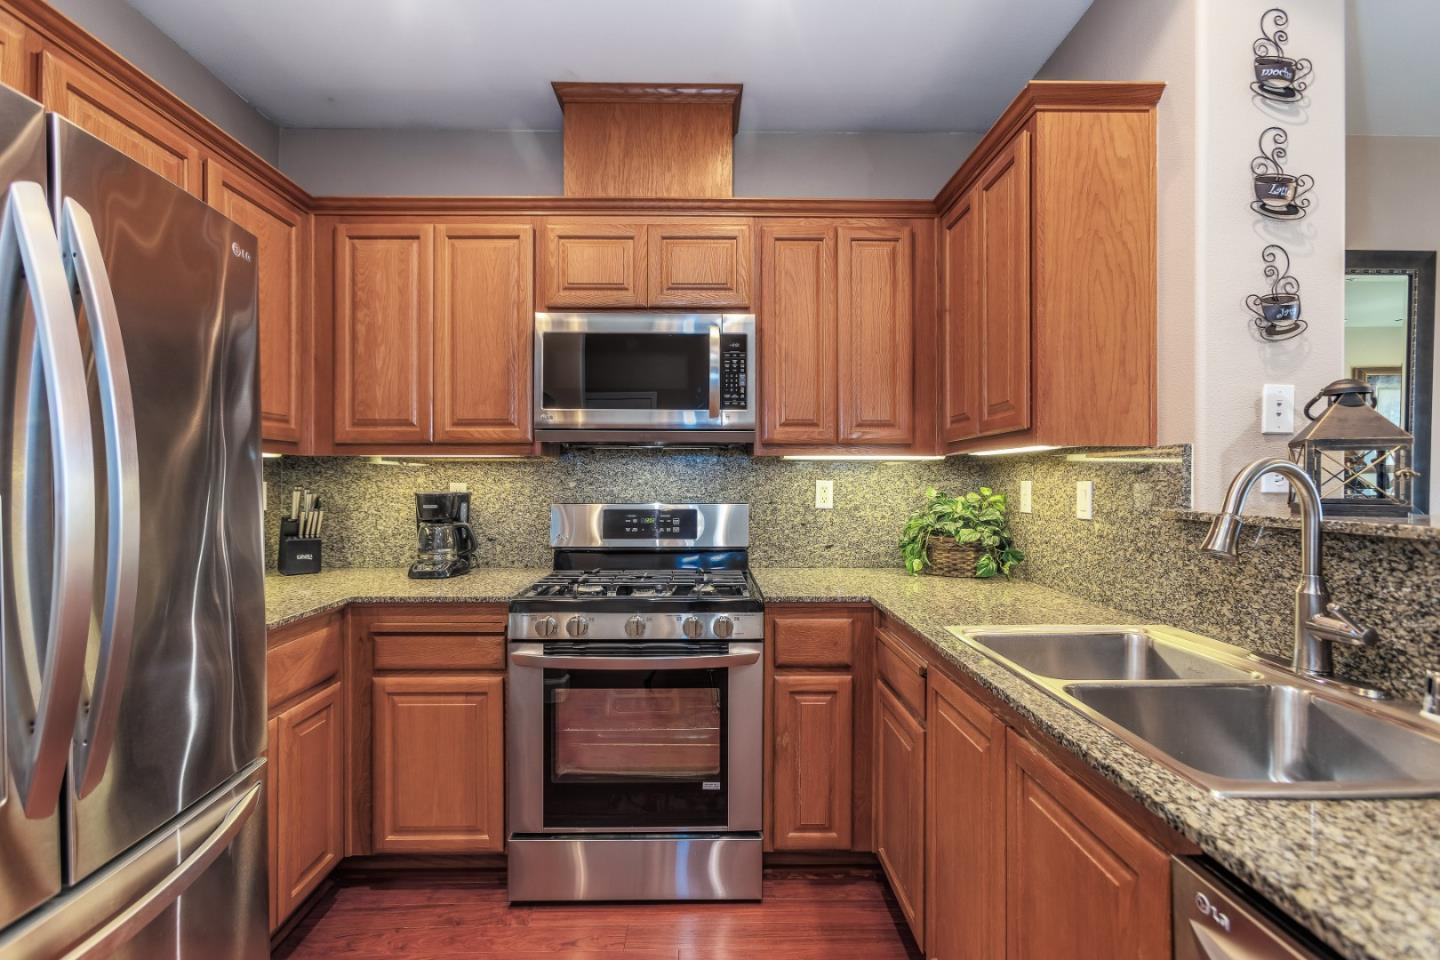 thumbnail image for 3240 Maguire Way, Dublin CA, 94568